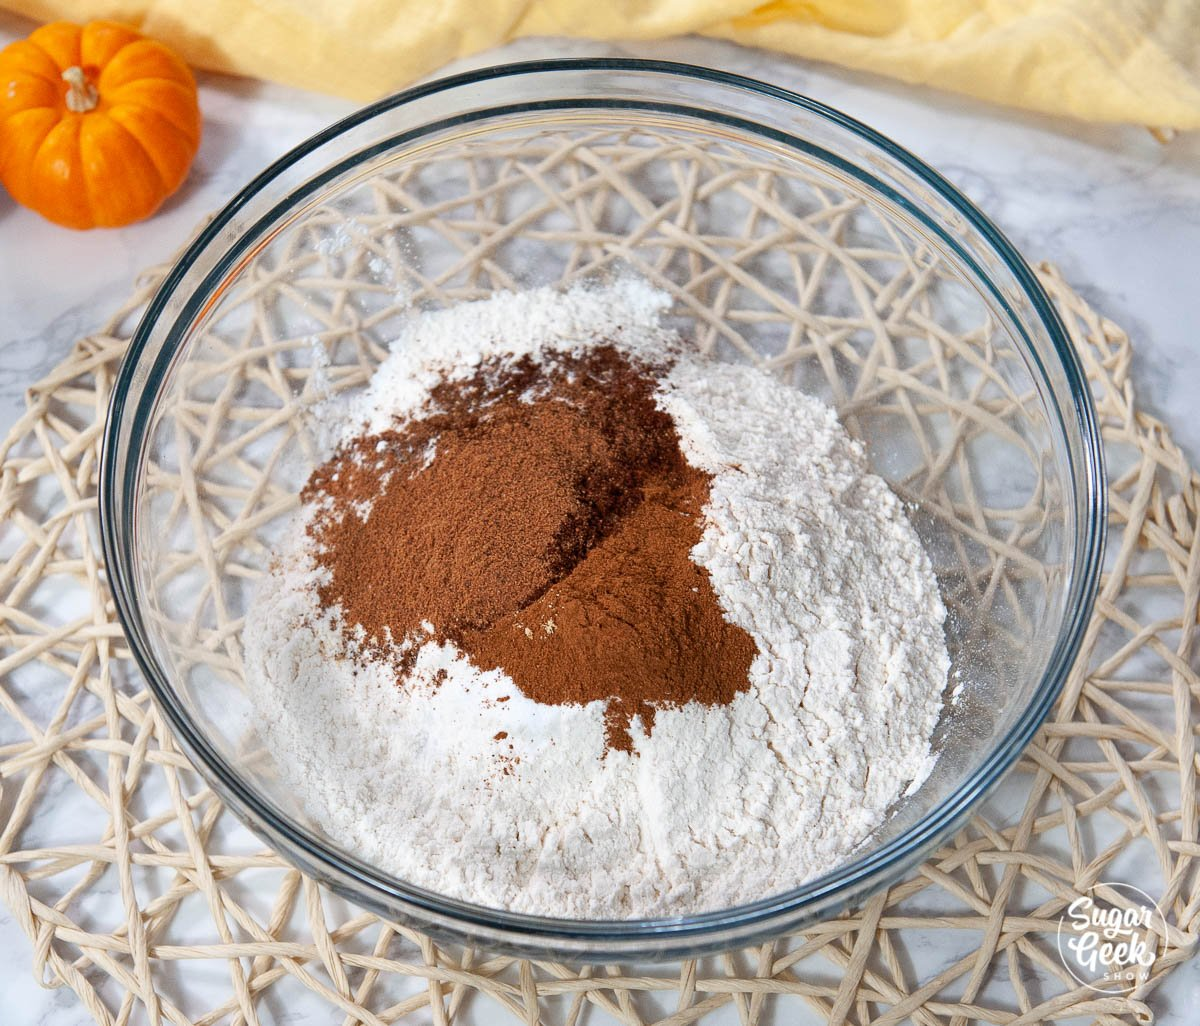 pumpkin spice cake ingredients in a clear bowl